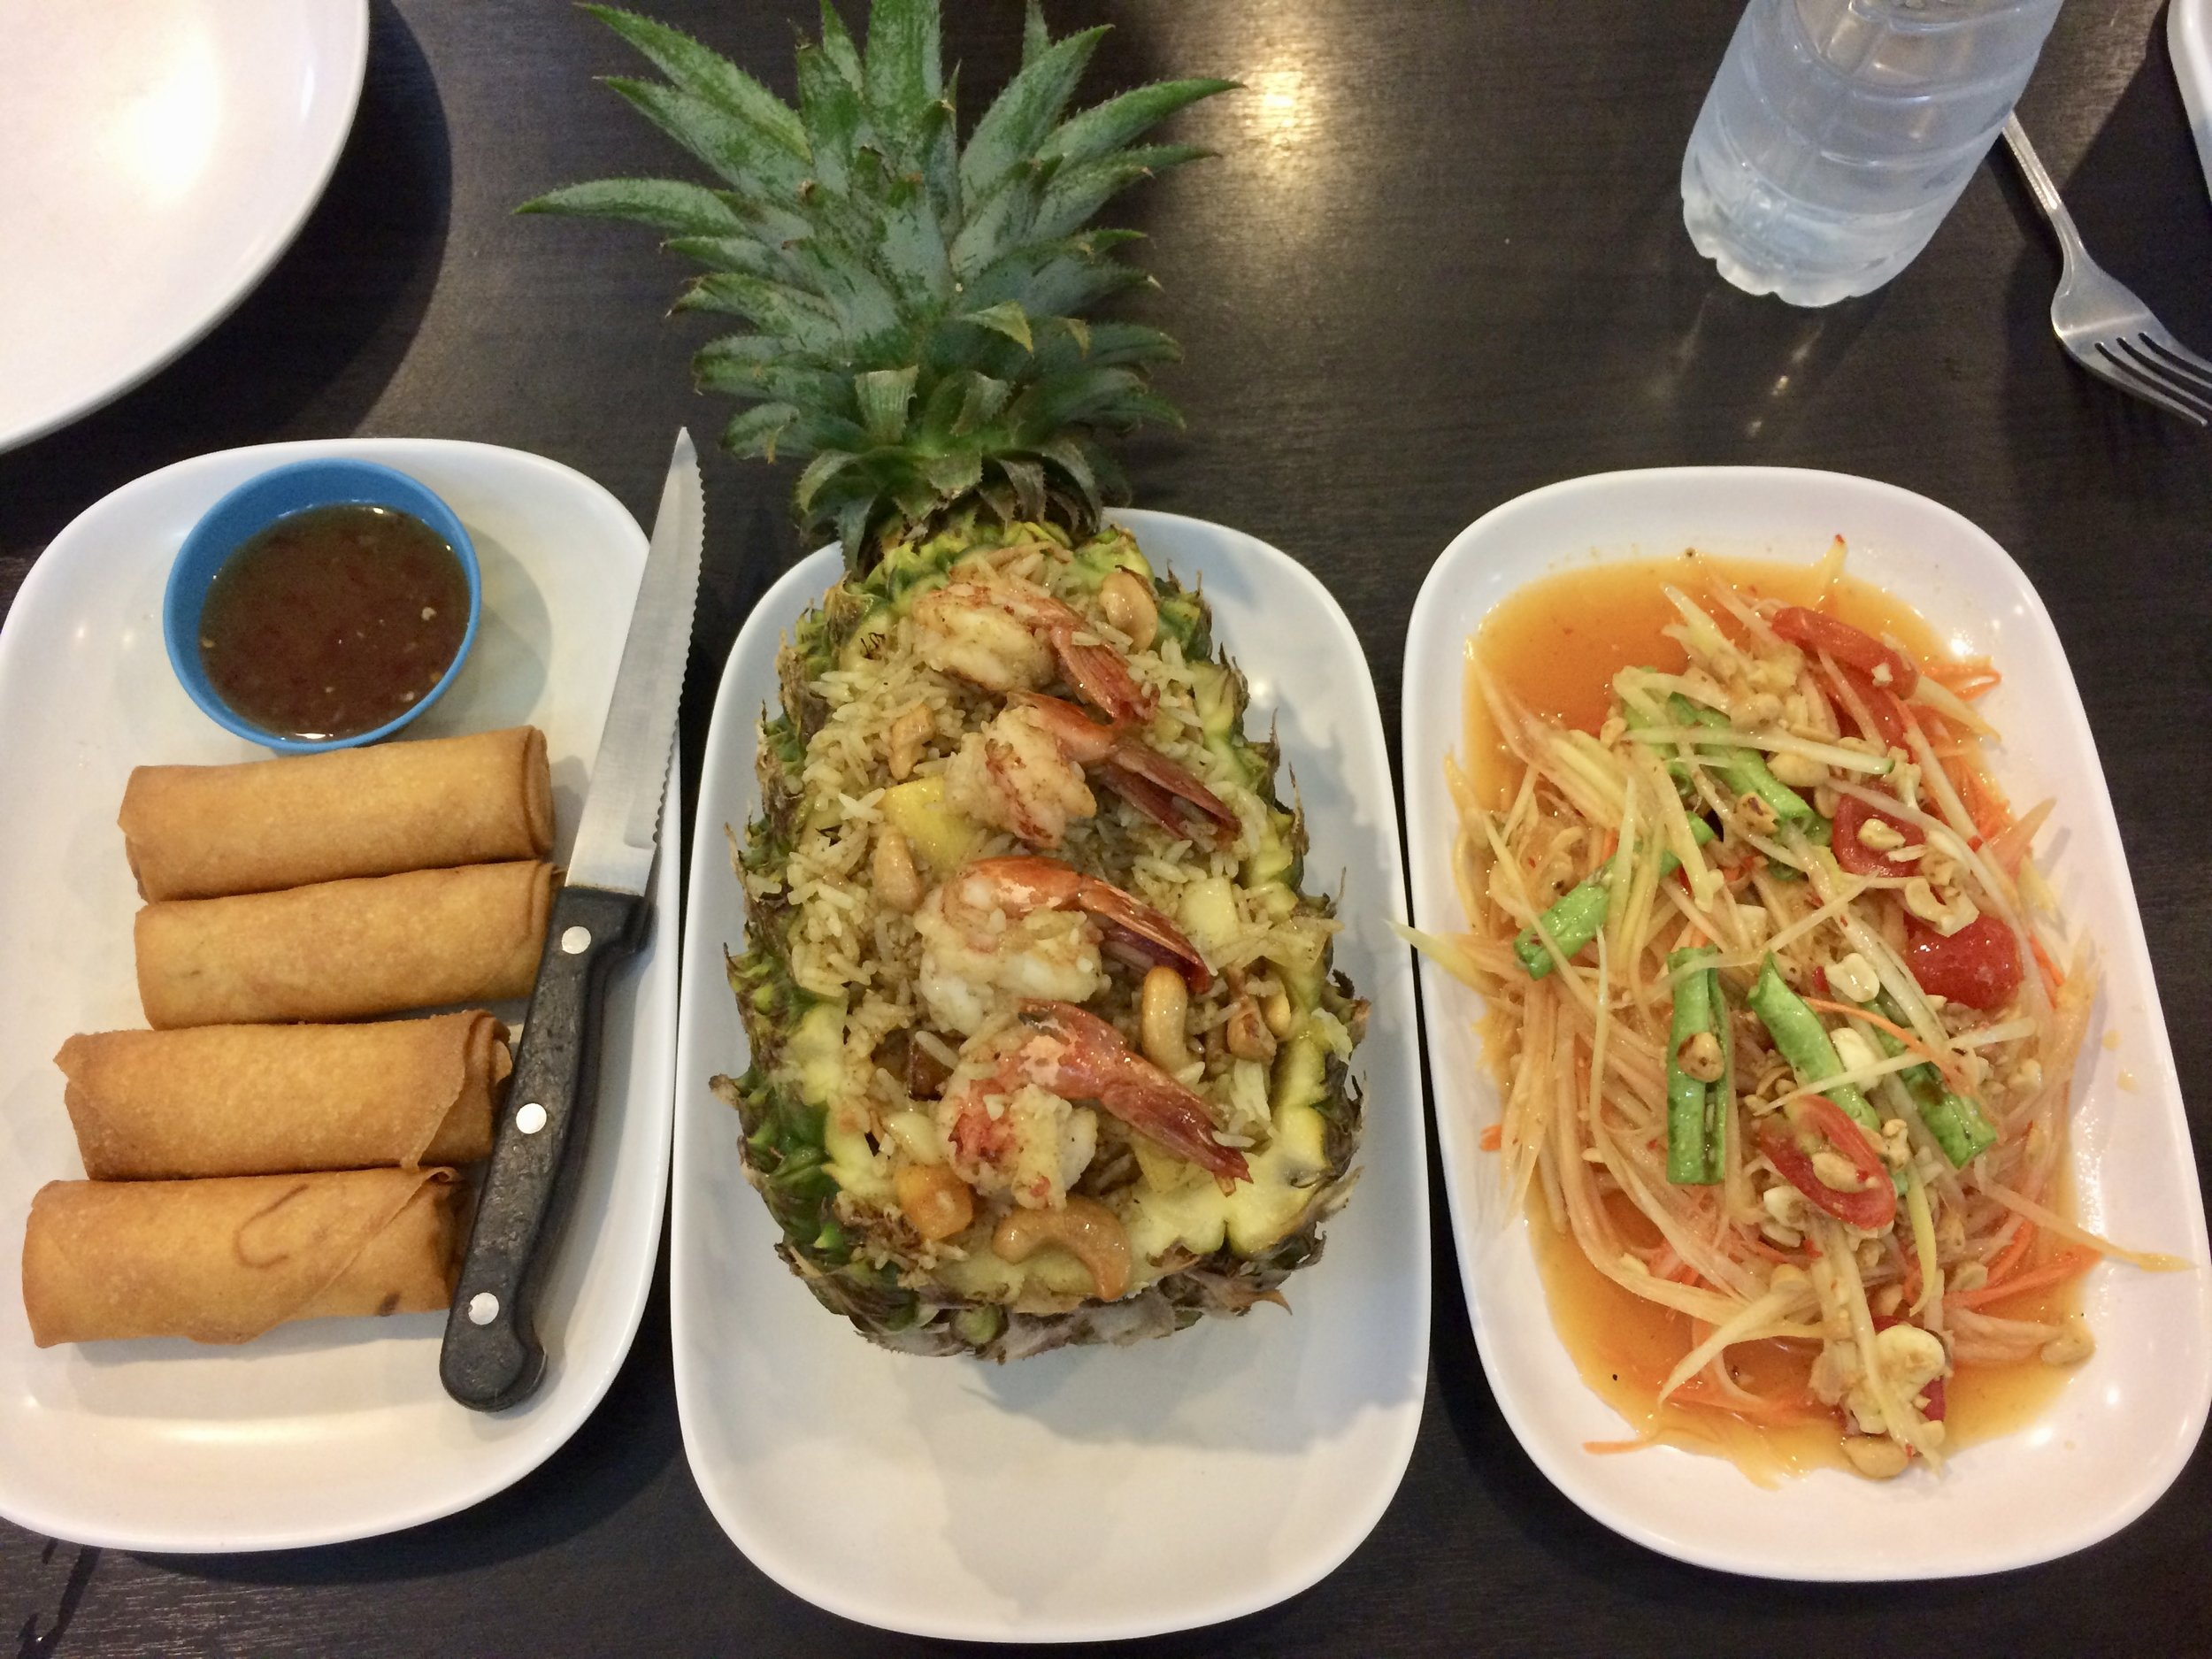 Spring rolls, pineapple rice with shrimp and mango salad, delish!